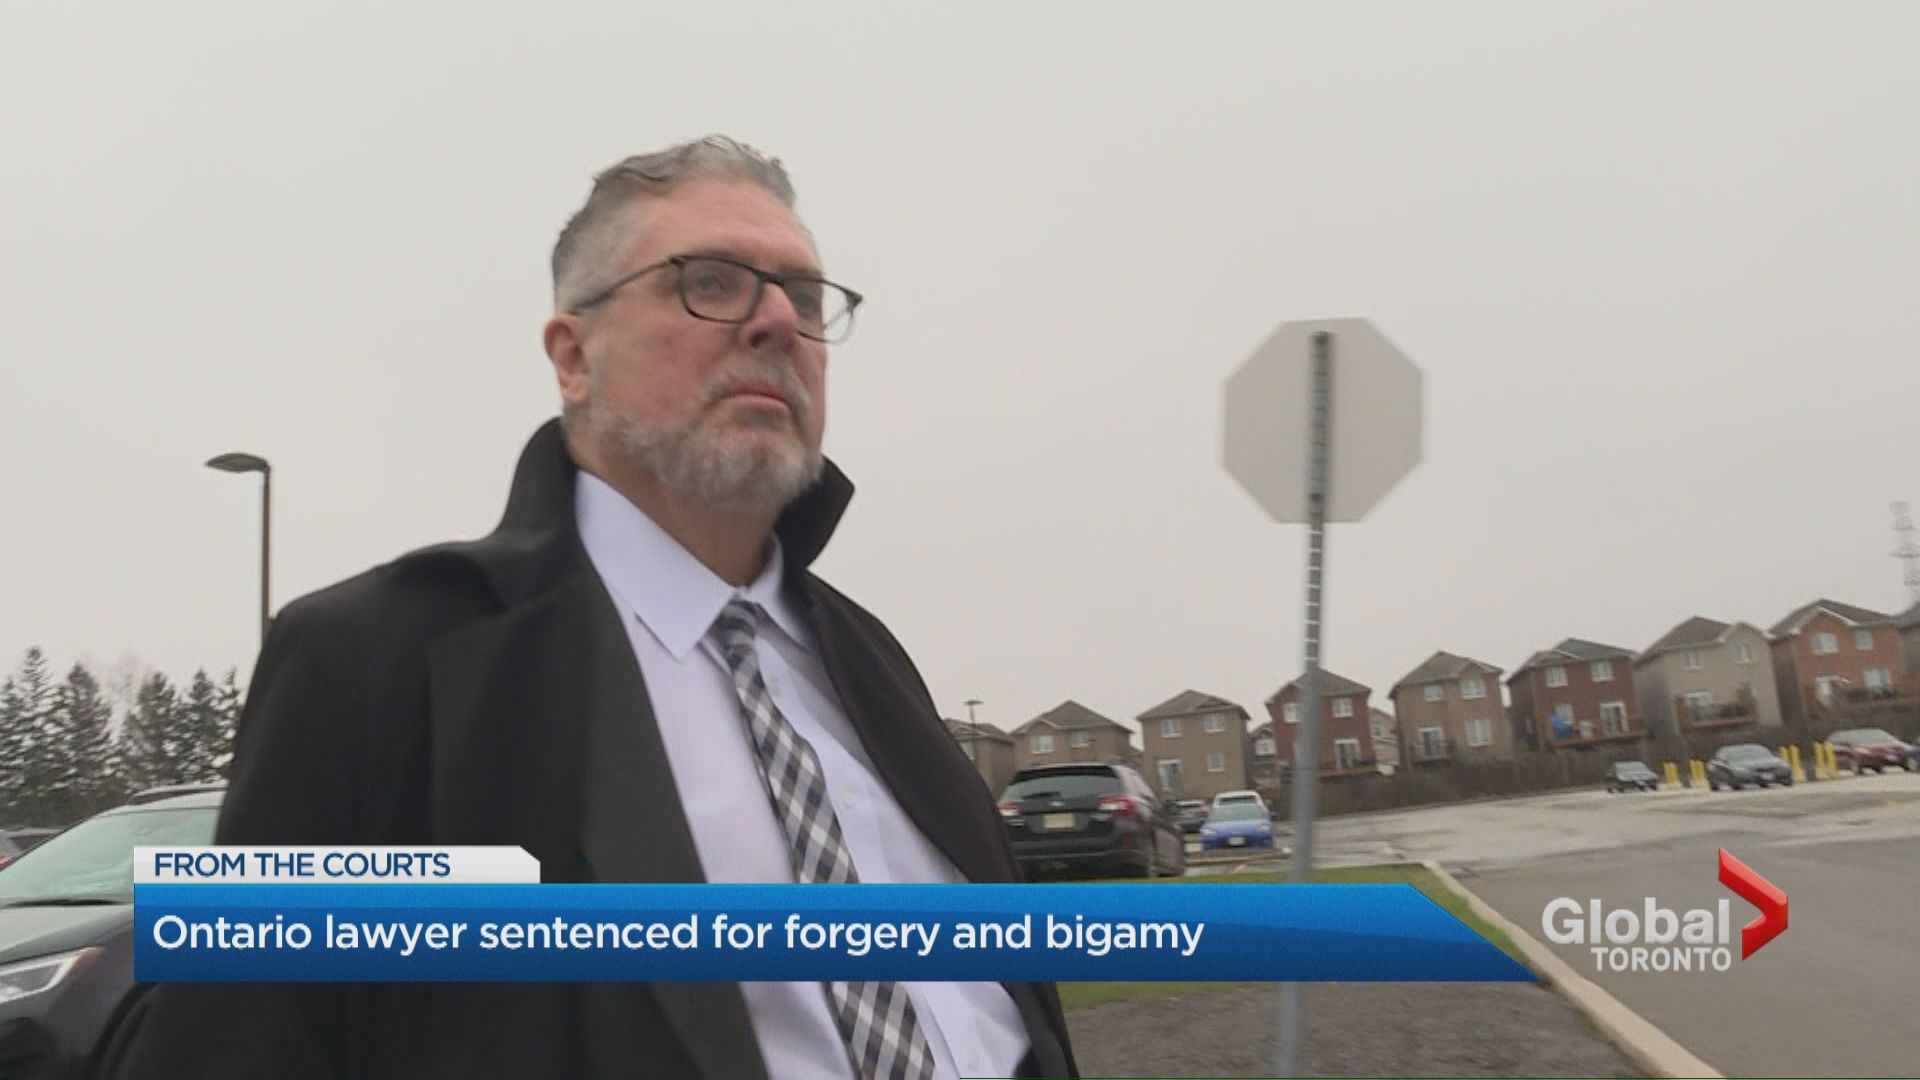 Ontario lawyer sentenced to house arrest, community service after pleading guilty to bigamy